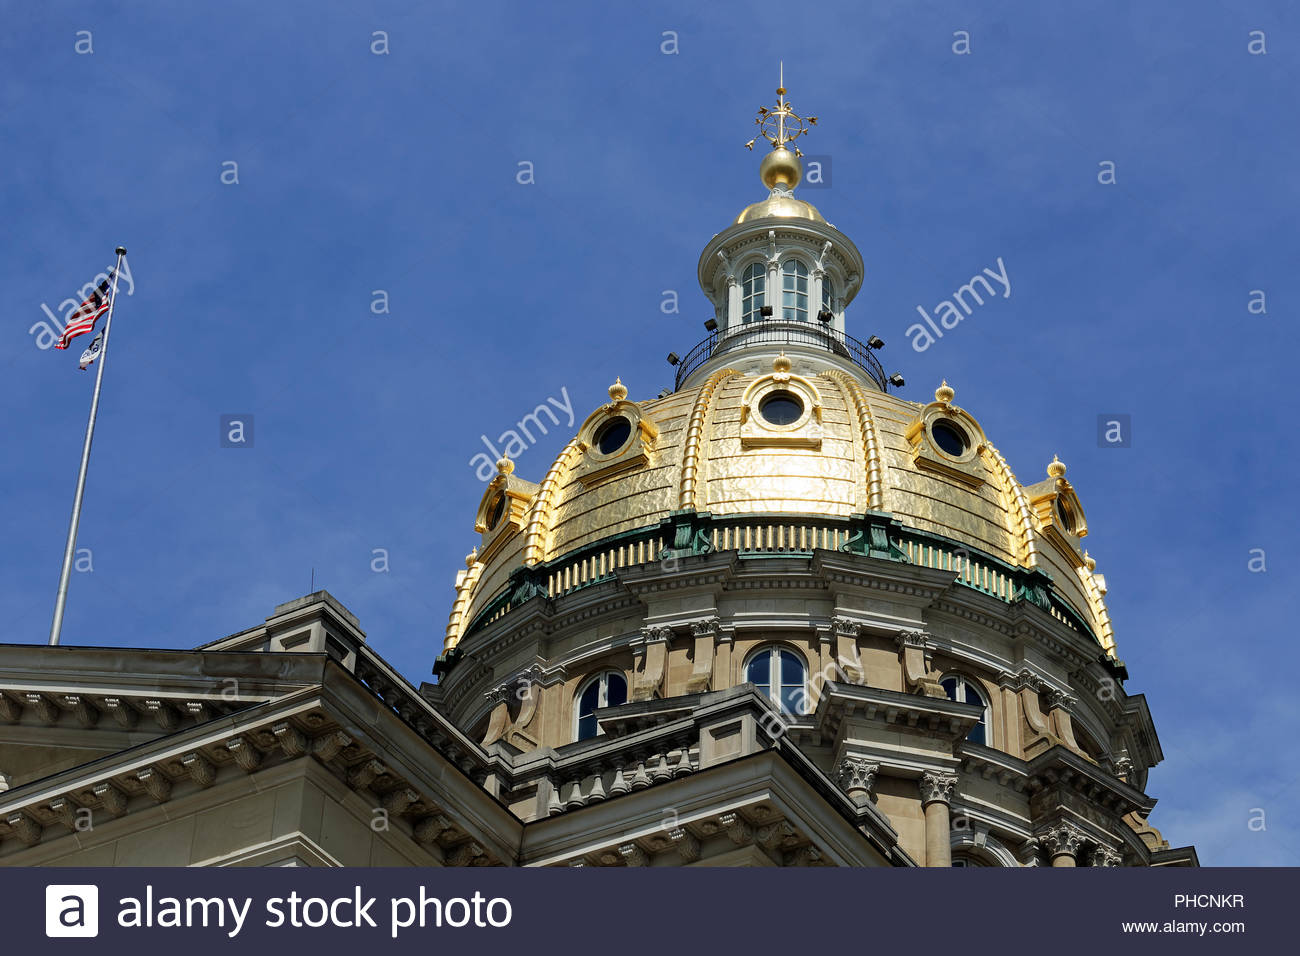 The Iowa State Capitol dome gleams in the sunlight. The beautiful dome has stood over Des Moines since 1886. - Stock Image